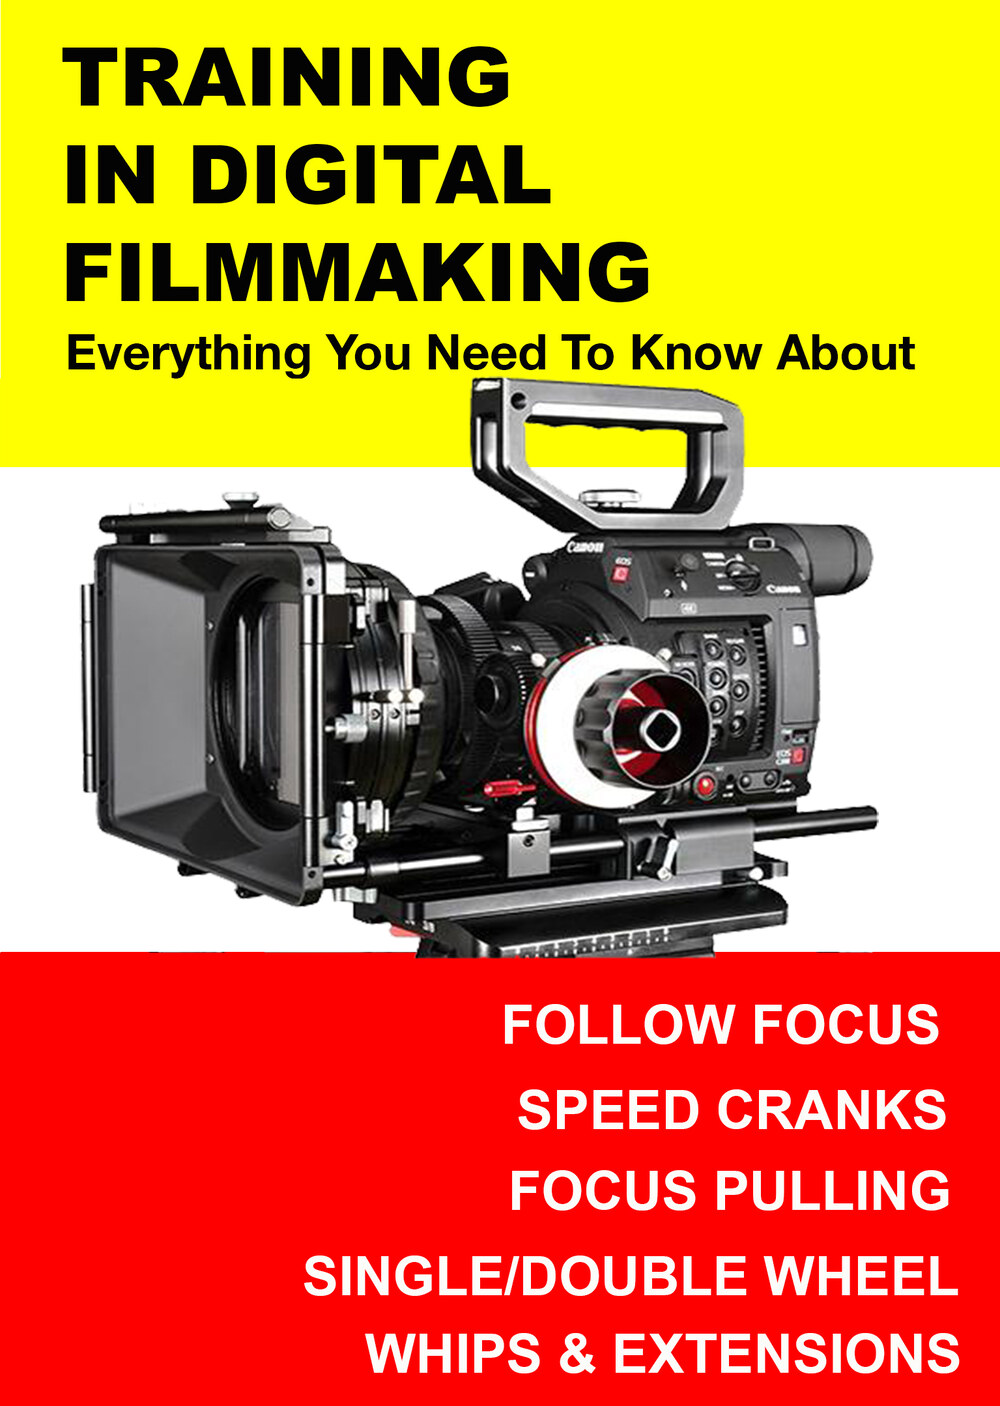 F3005 - Everything you Need to Know About Follow Focus, Speed Cranks, Focus Pulling, Whips & Extensions